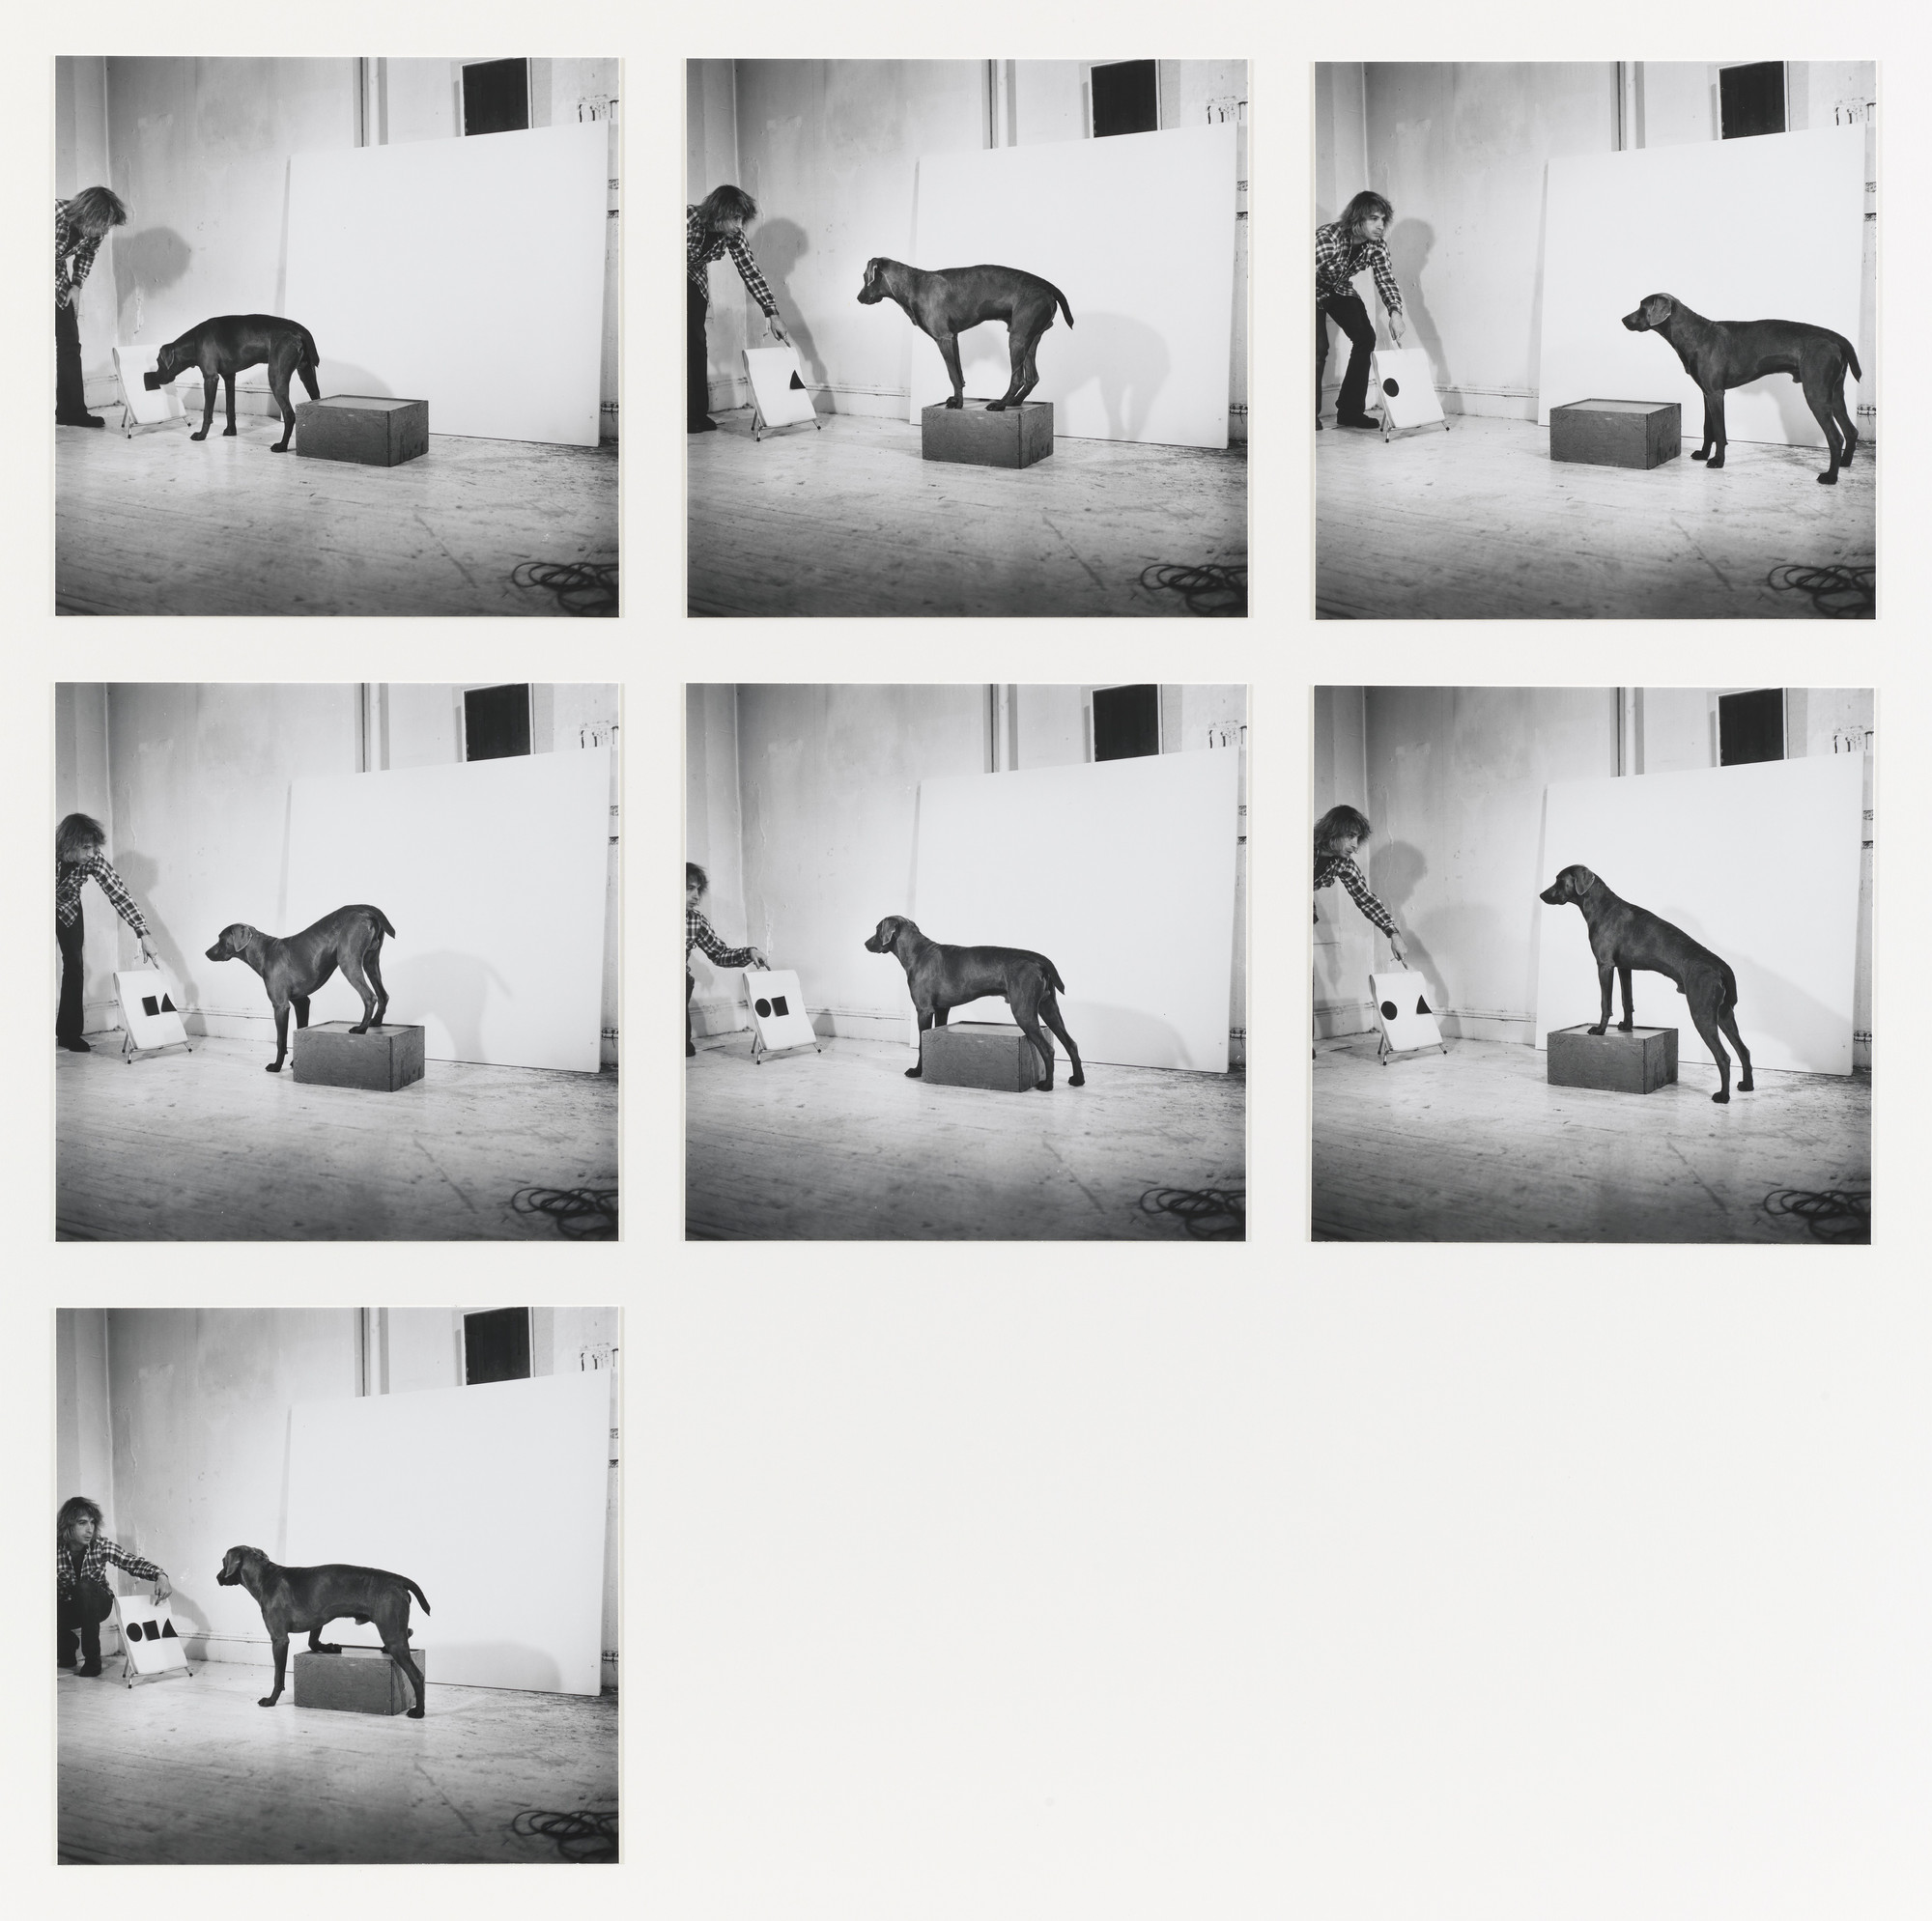 William Wegman. Before, On, After Permutations I. 1972